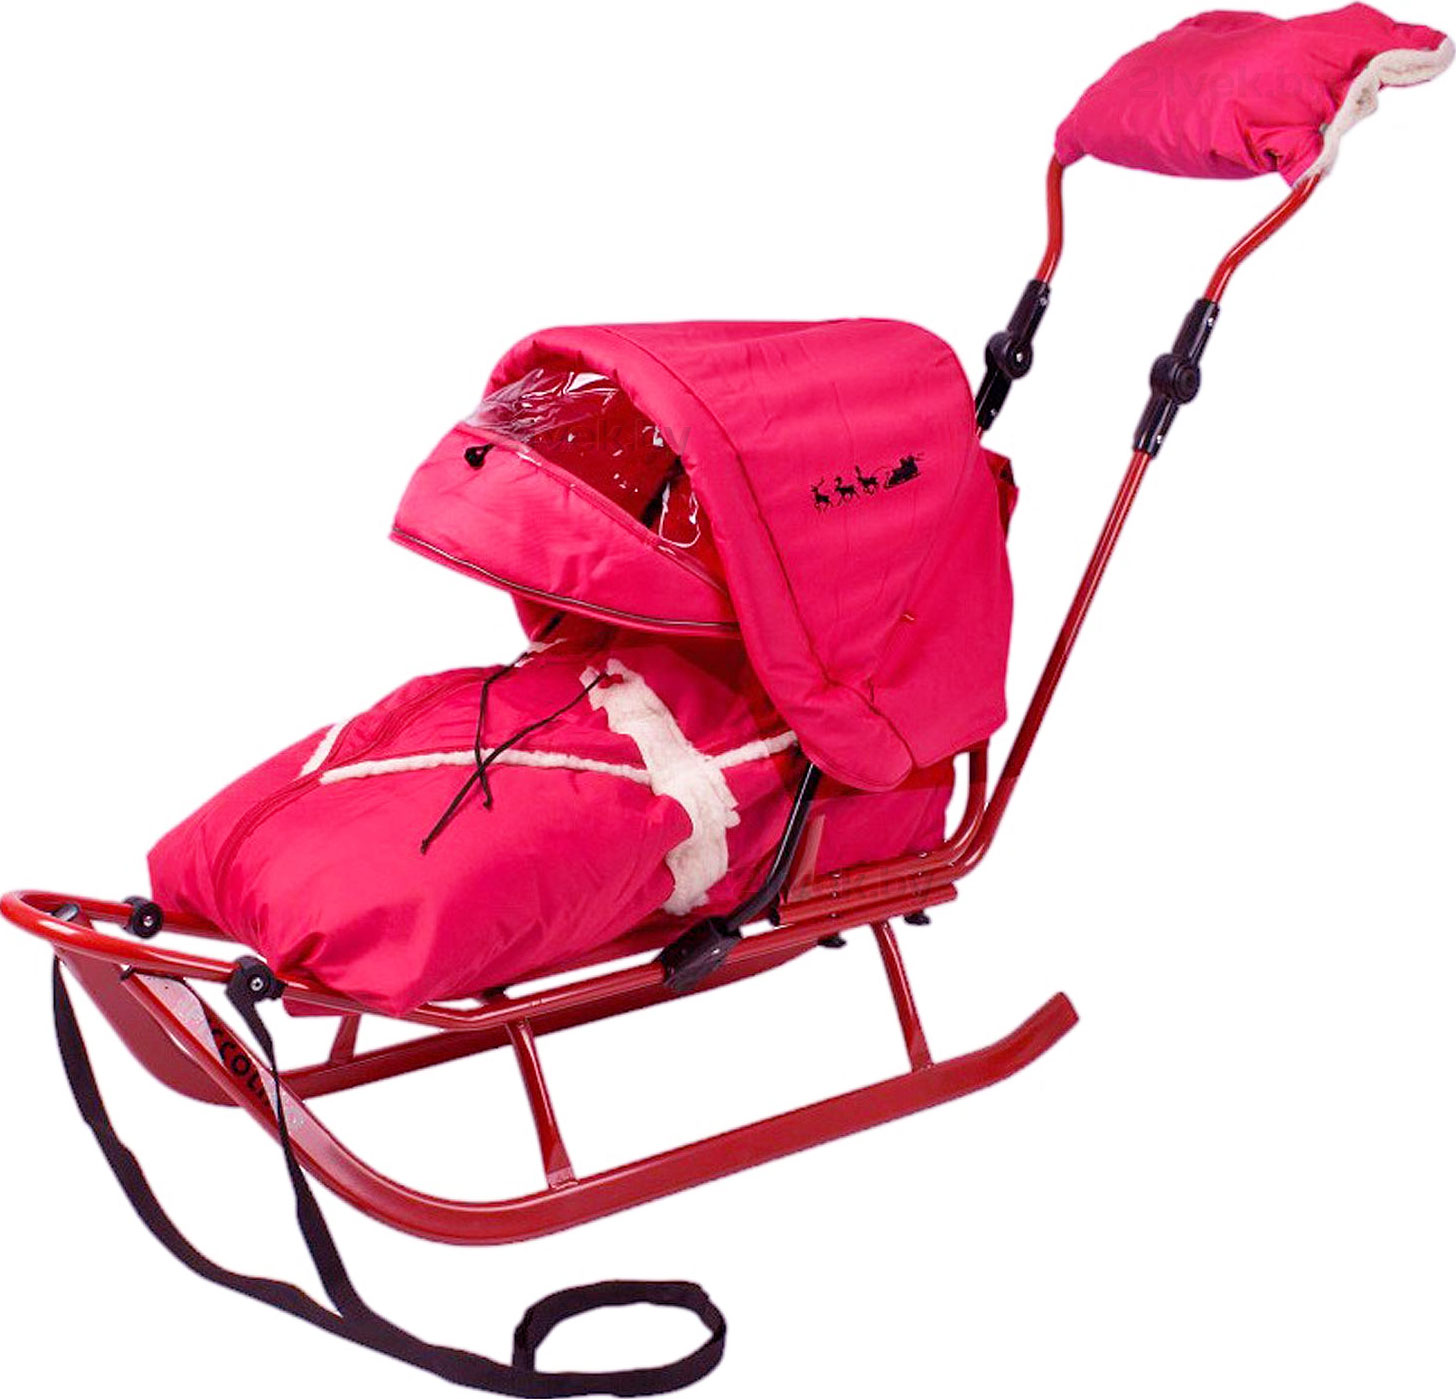 Piccolino Deluxe (Pink) 21vek.by 1516000.000